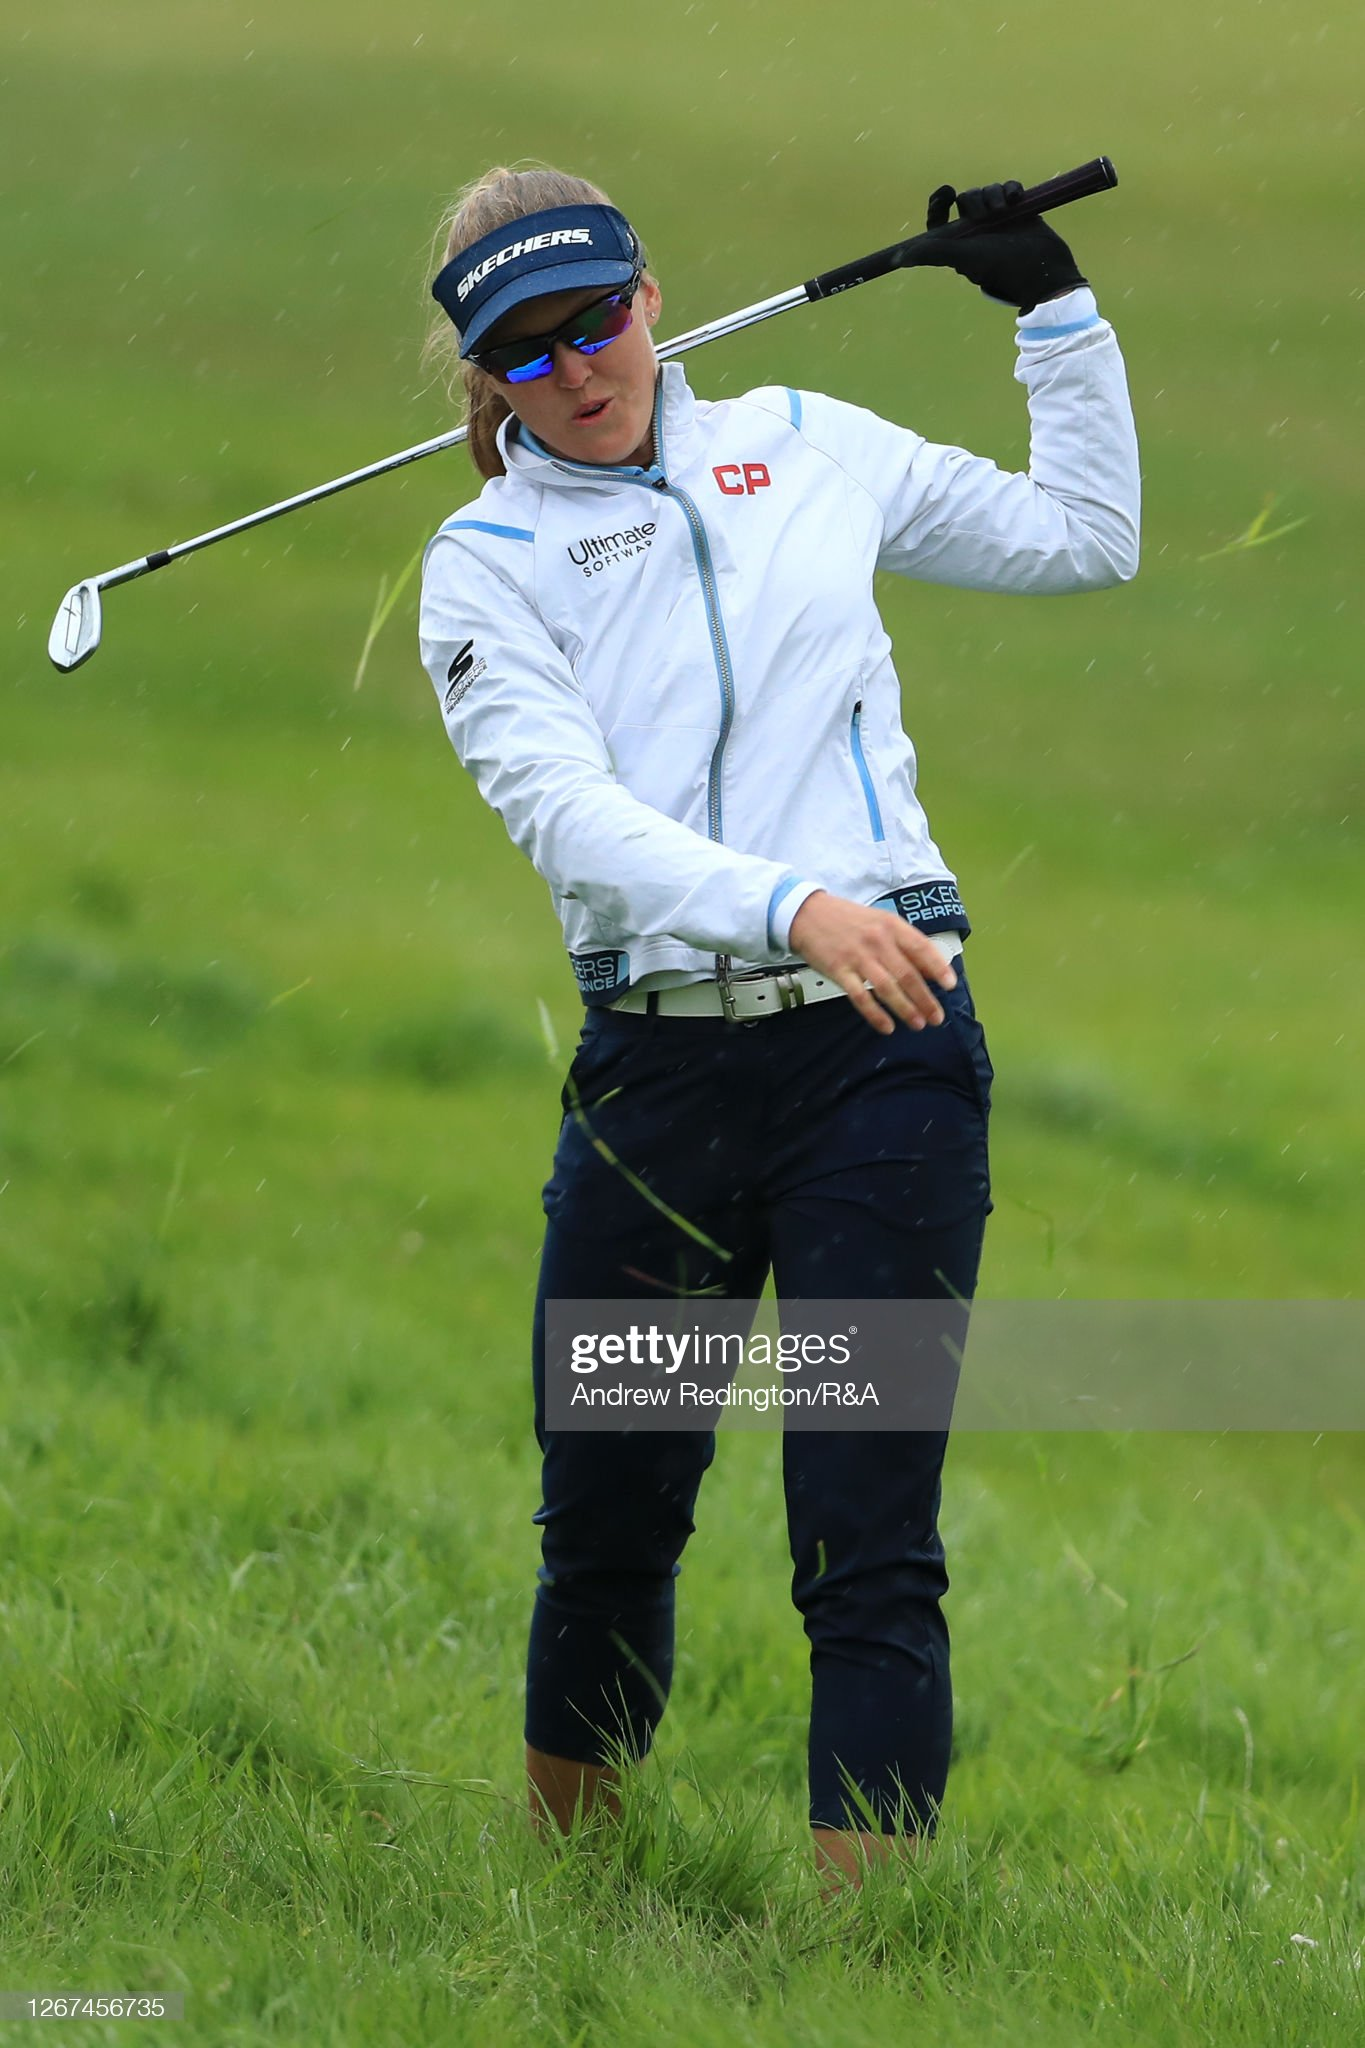 https://media.gettyimages.com/photos/brookehenderson-of-canada-plays-her-second-shot-on-the-1st-hole-day-picture-id1267456735?s=2048x2048